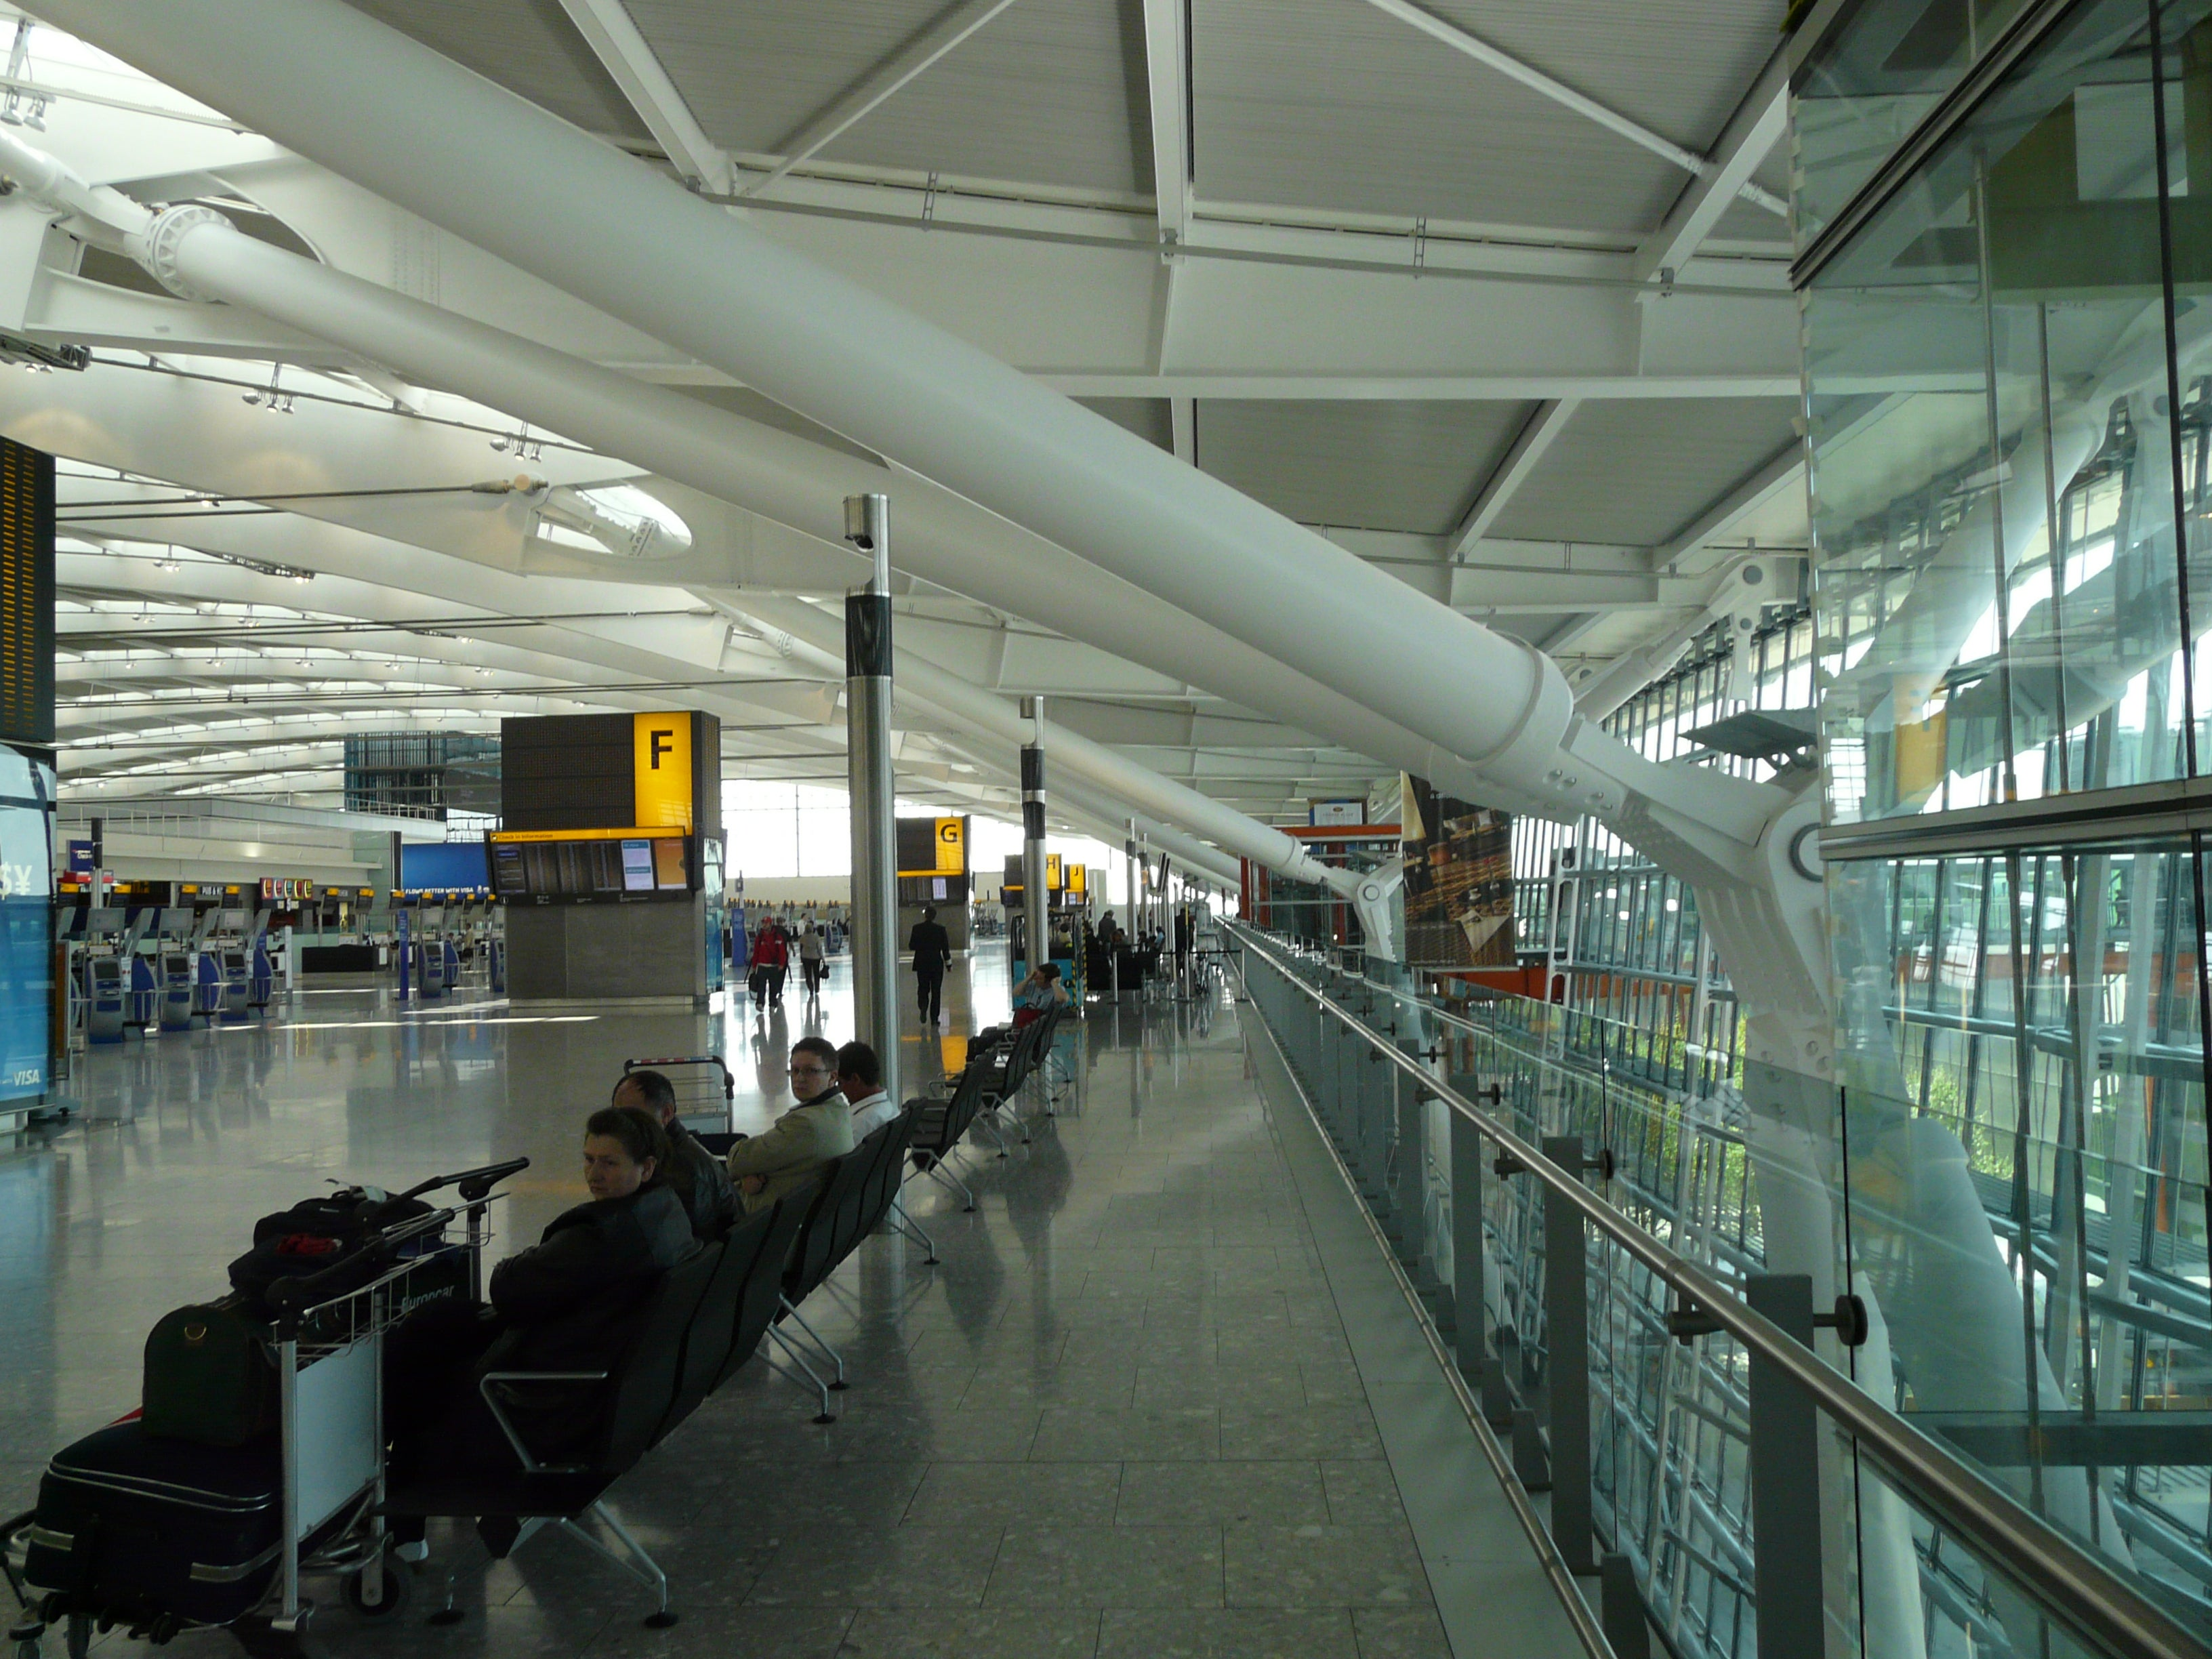 Vehículo en Aeropuerto de Londres - Heathrow